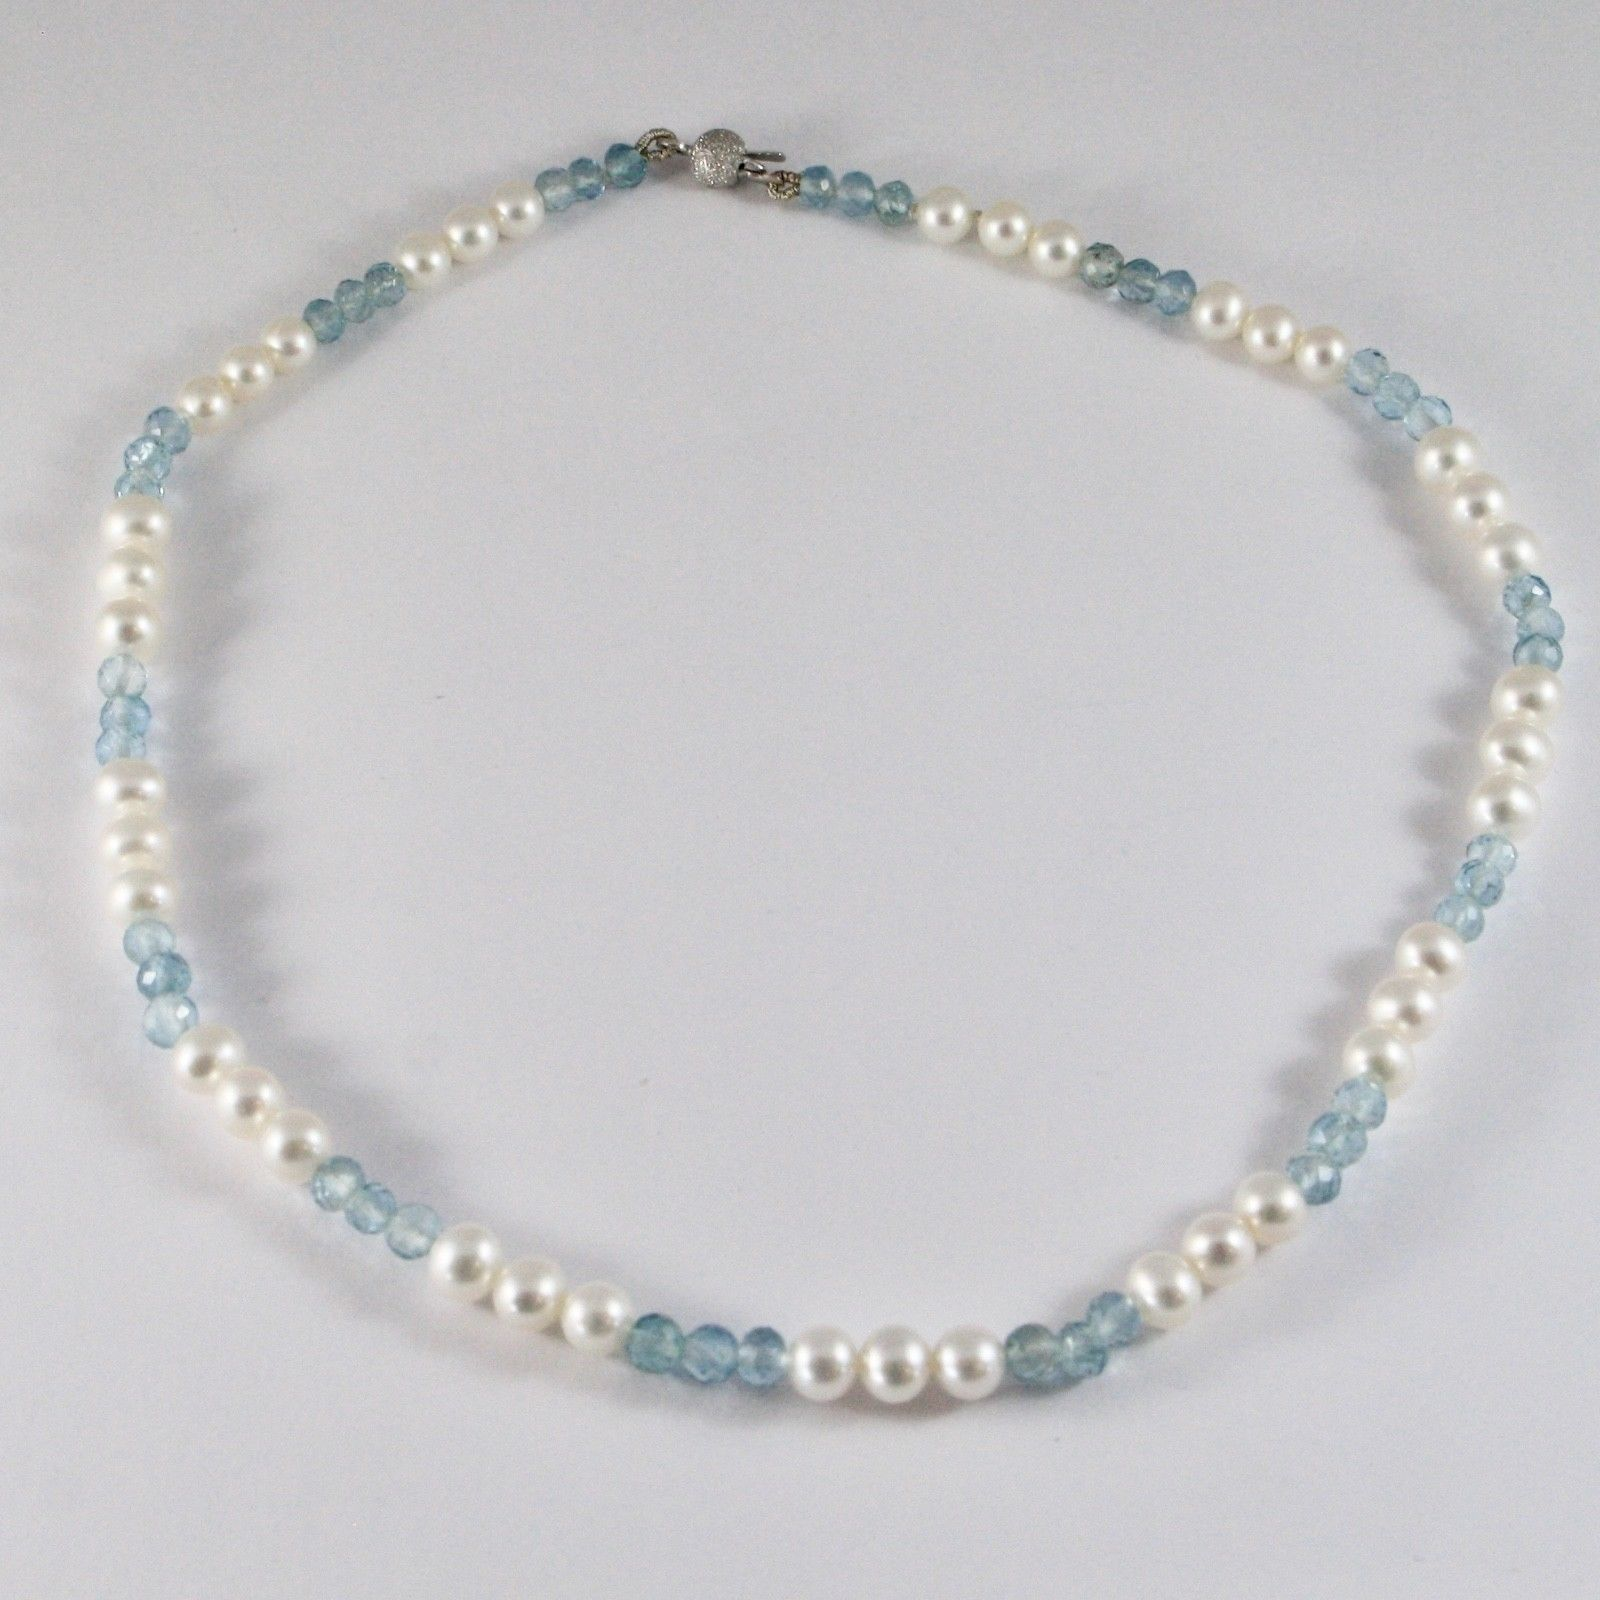 NECKLACE WHITE GOLD 18KT WITH WHITE PEARLS AND AQUAMARINE NATURAL FACETED